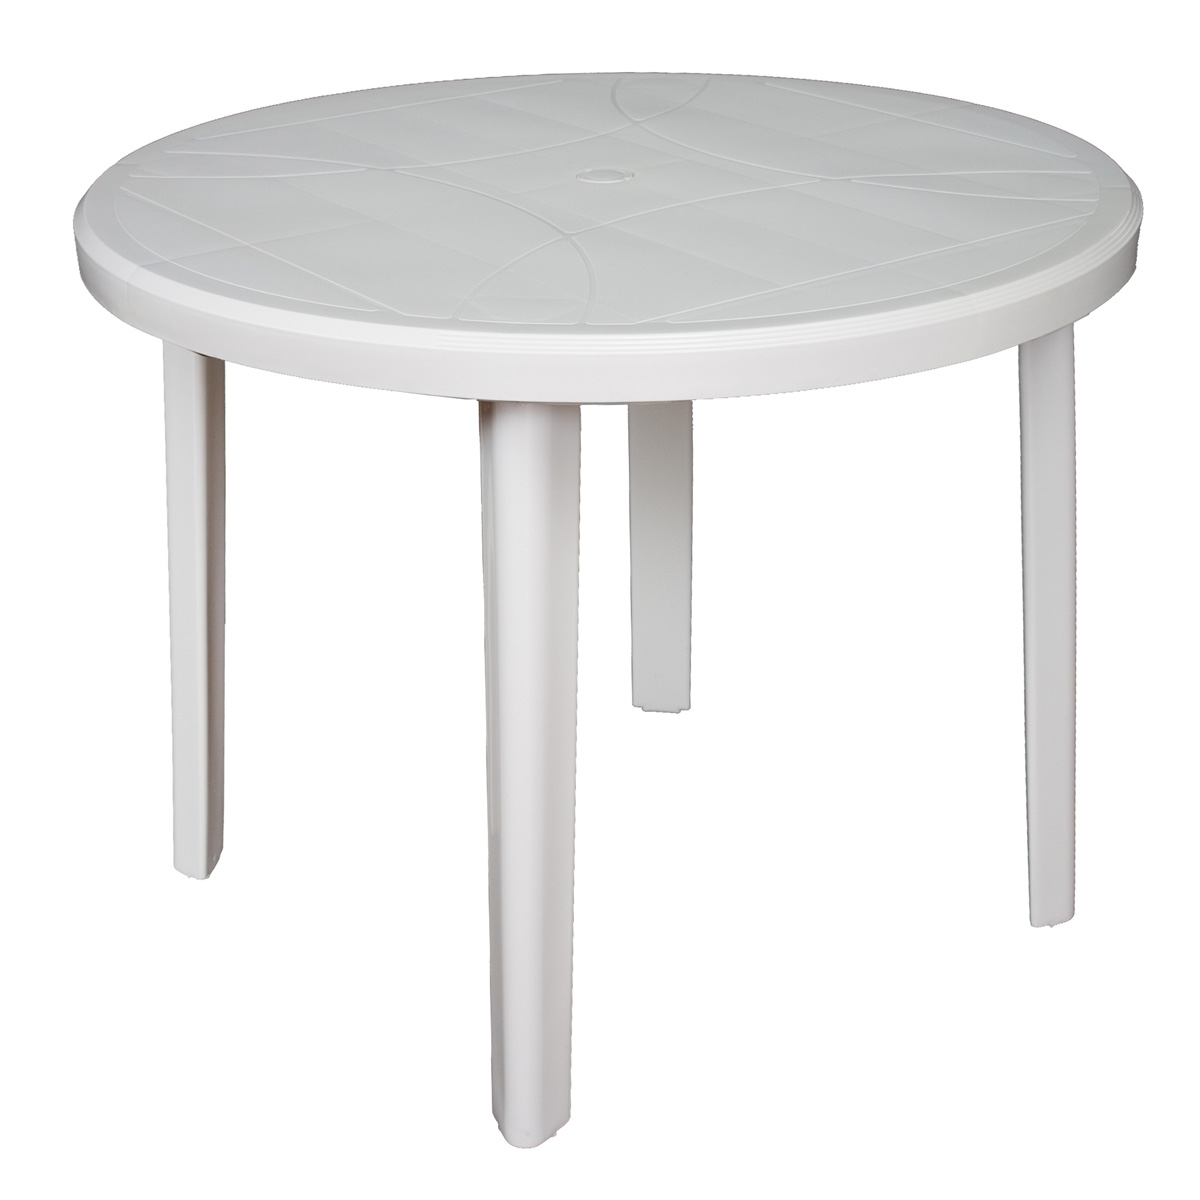 De Table Ronde 90 Cm Jardin xeQBEdWrCo